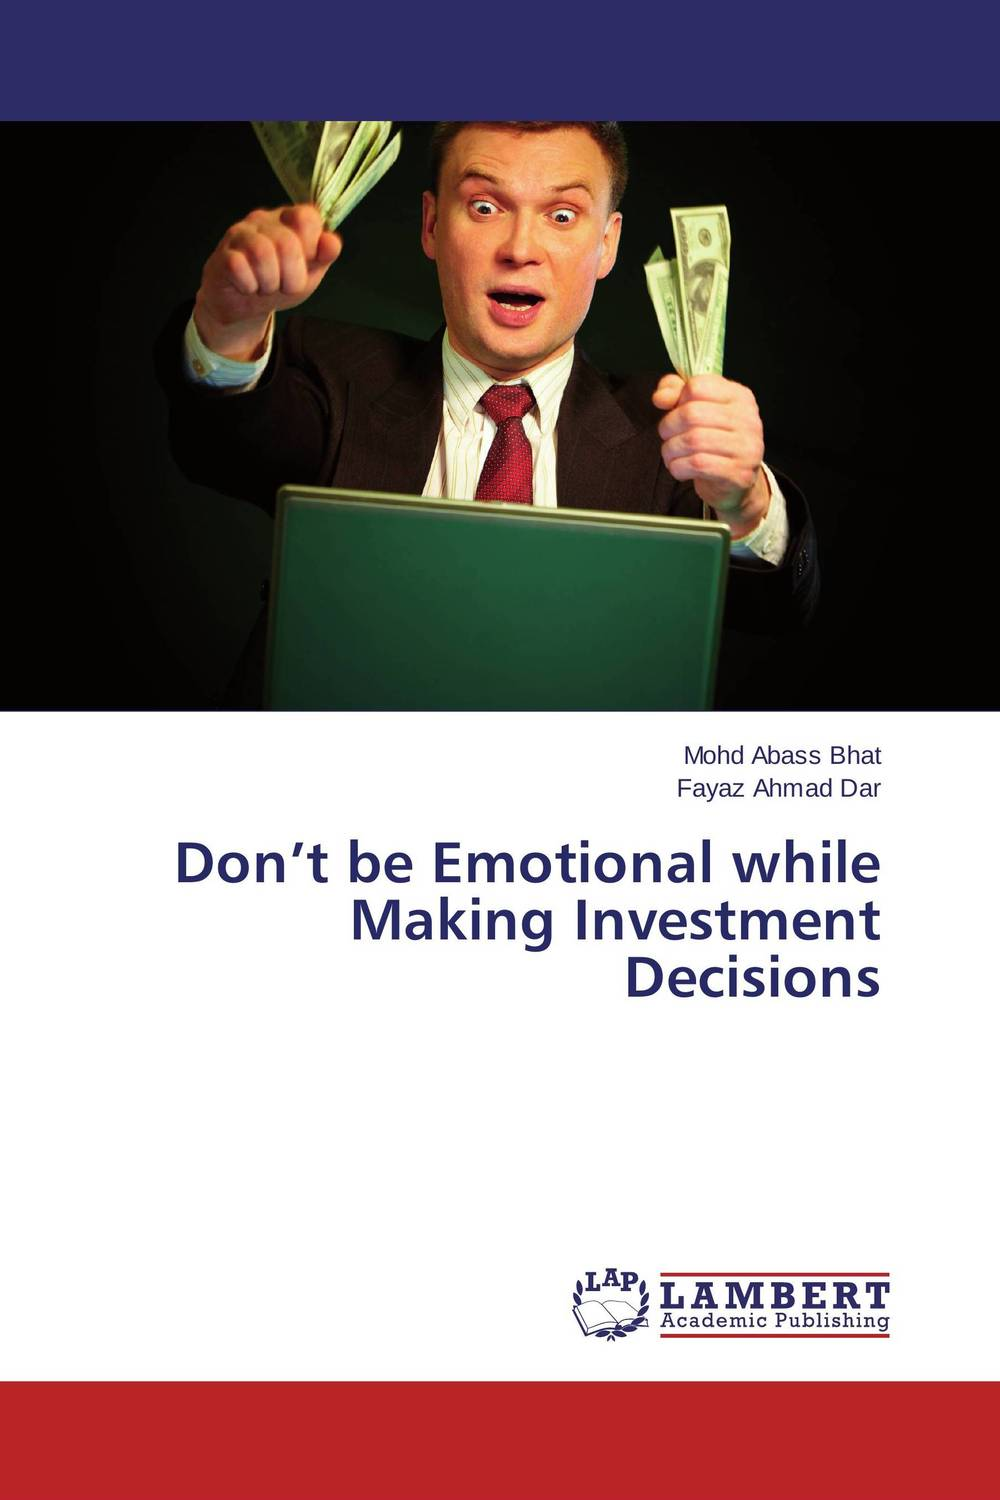 Don't be Emotional while Making Investment Decisions